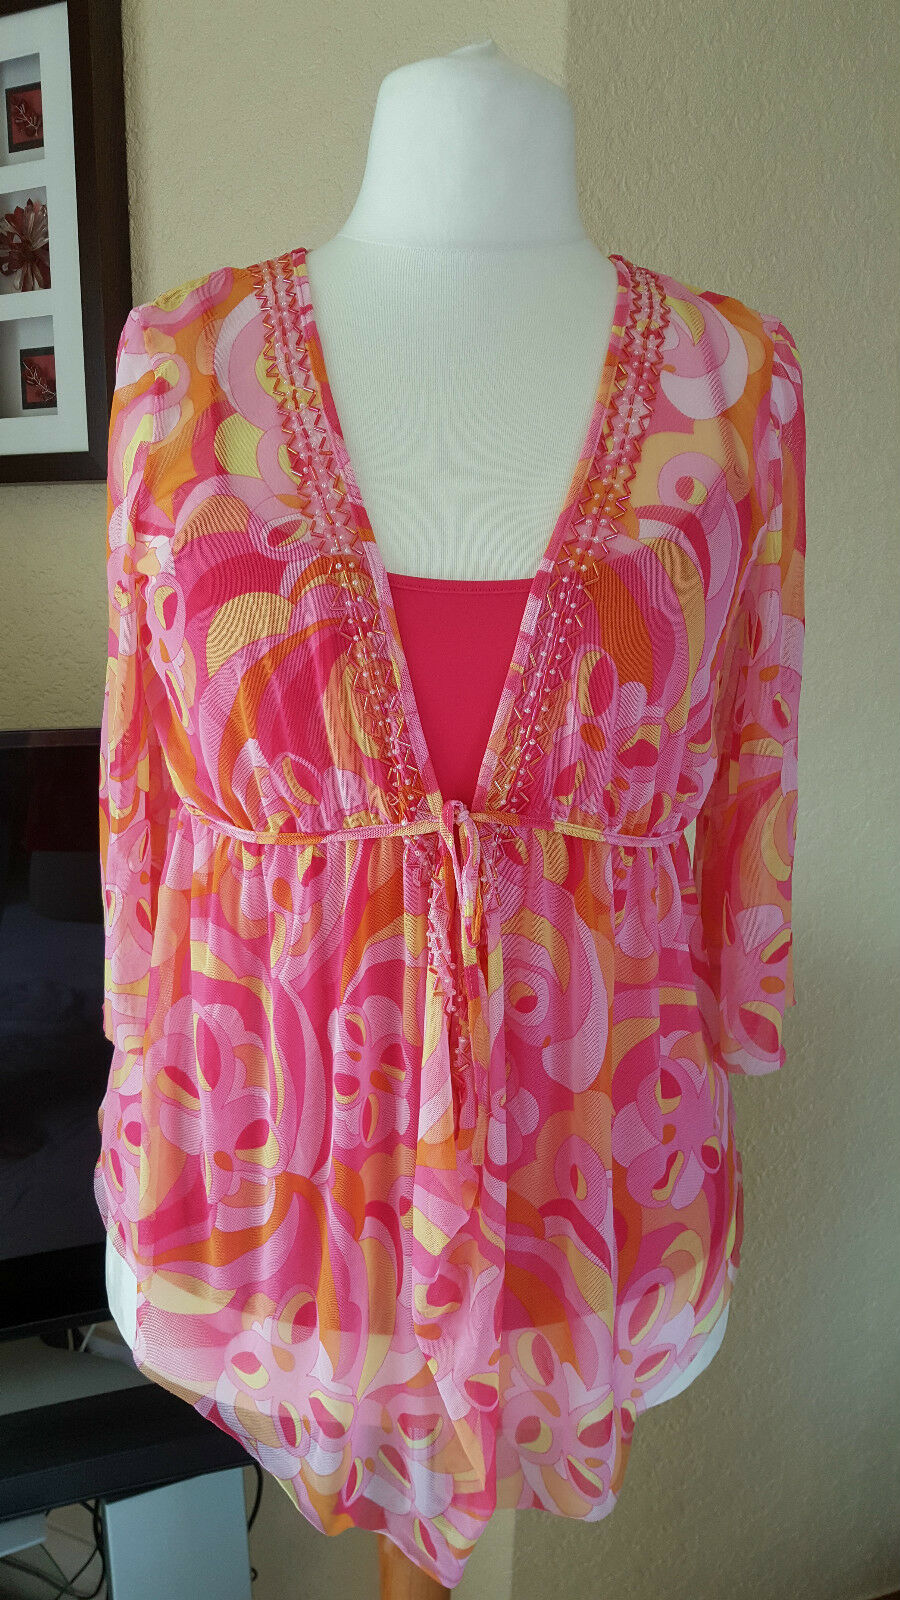 PINK MIX SWIRL BEADED TOP MESH  BEACH SUMMER NEXT 16 - HOLIDAY CRUISE